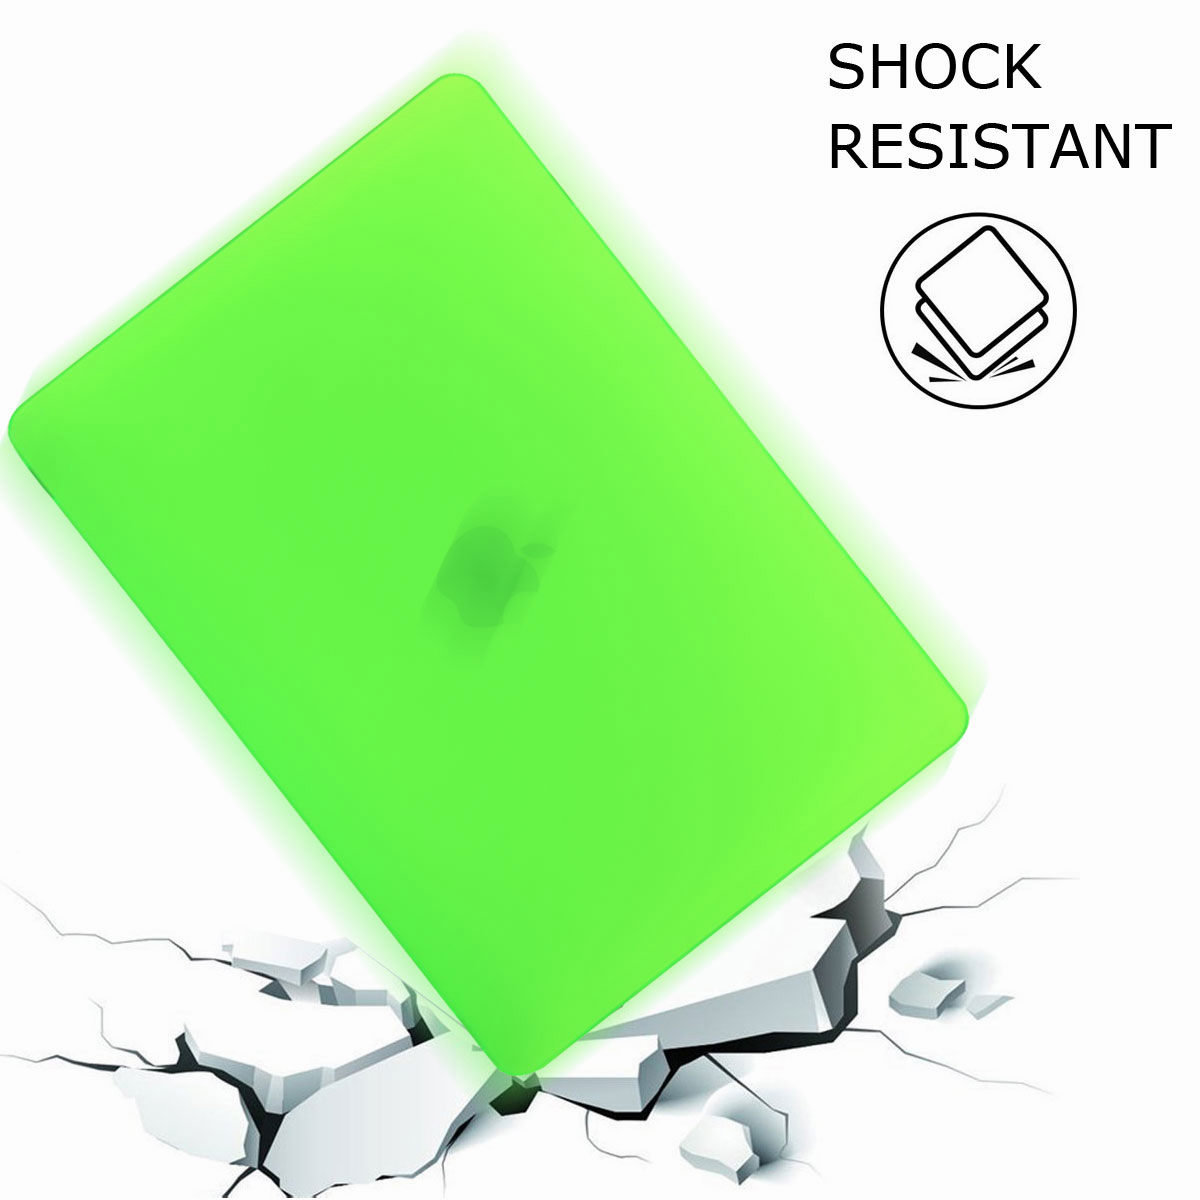 Shockproof-Rubberized-Matte-Hard-Case-Cover-For-Macbook-13-034-15-034-Inch-A1286-A1278 thumbnail 24